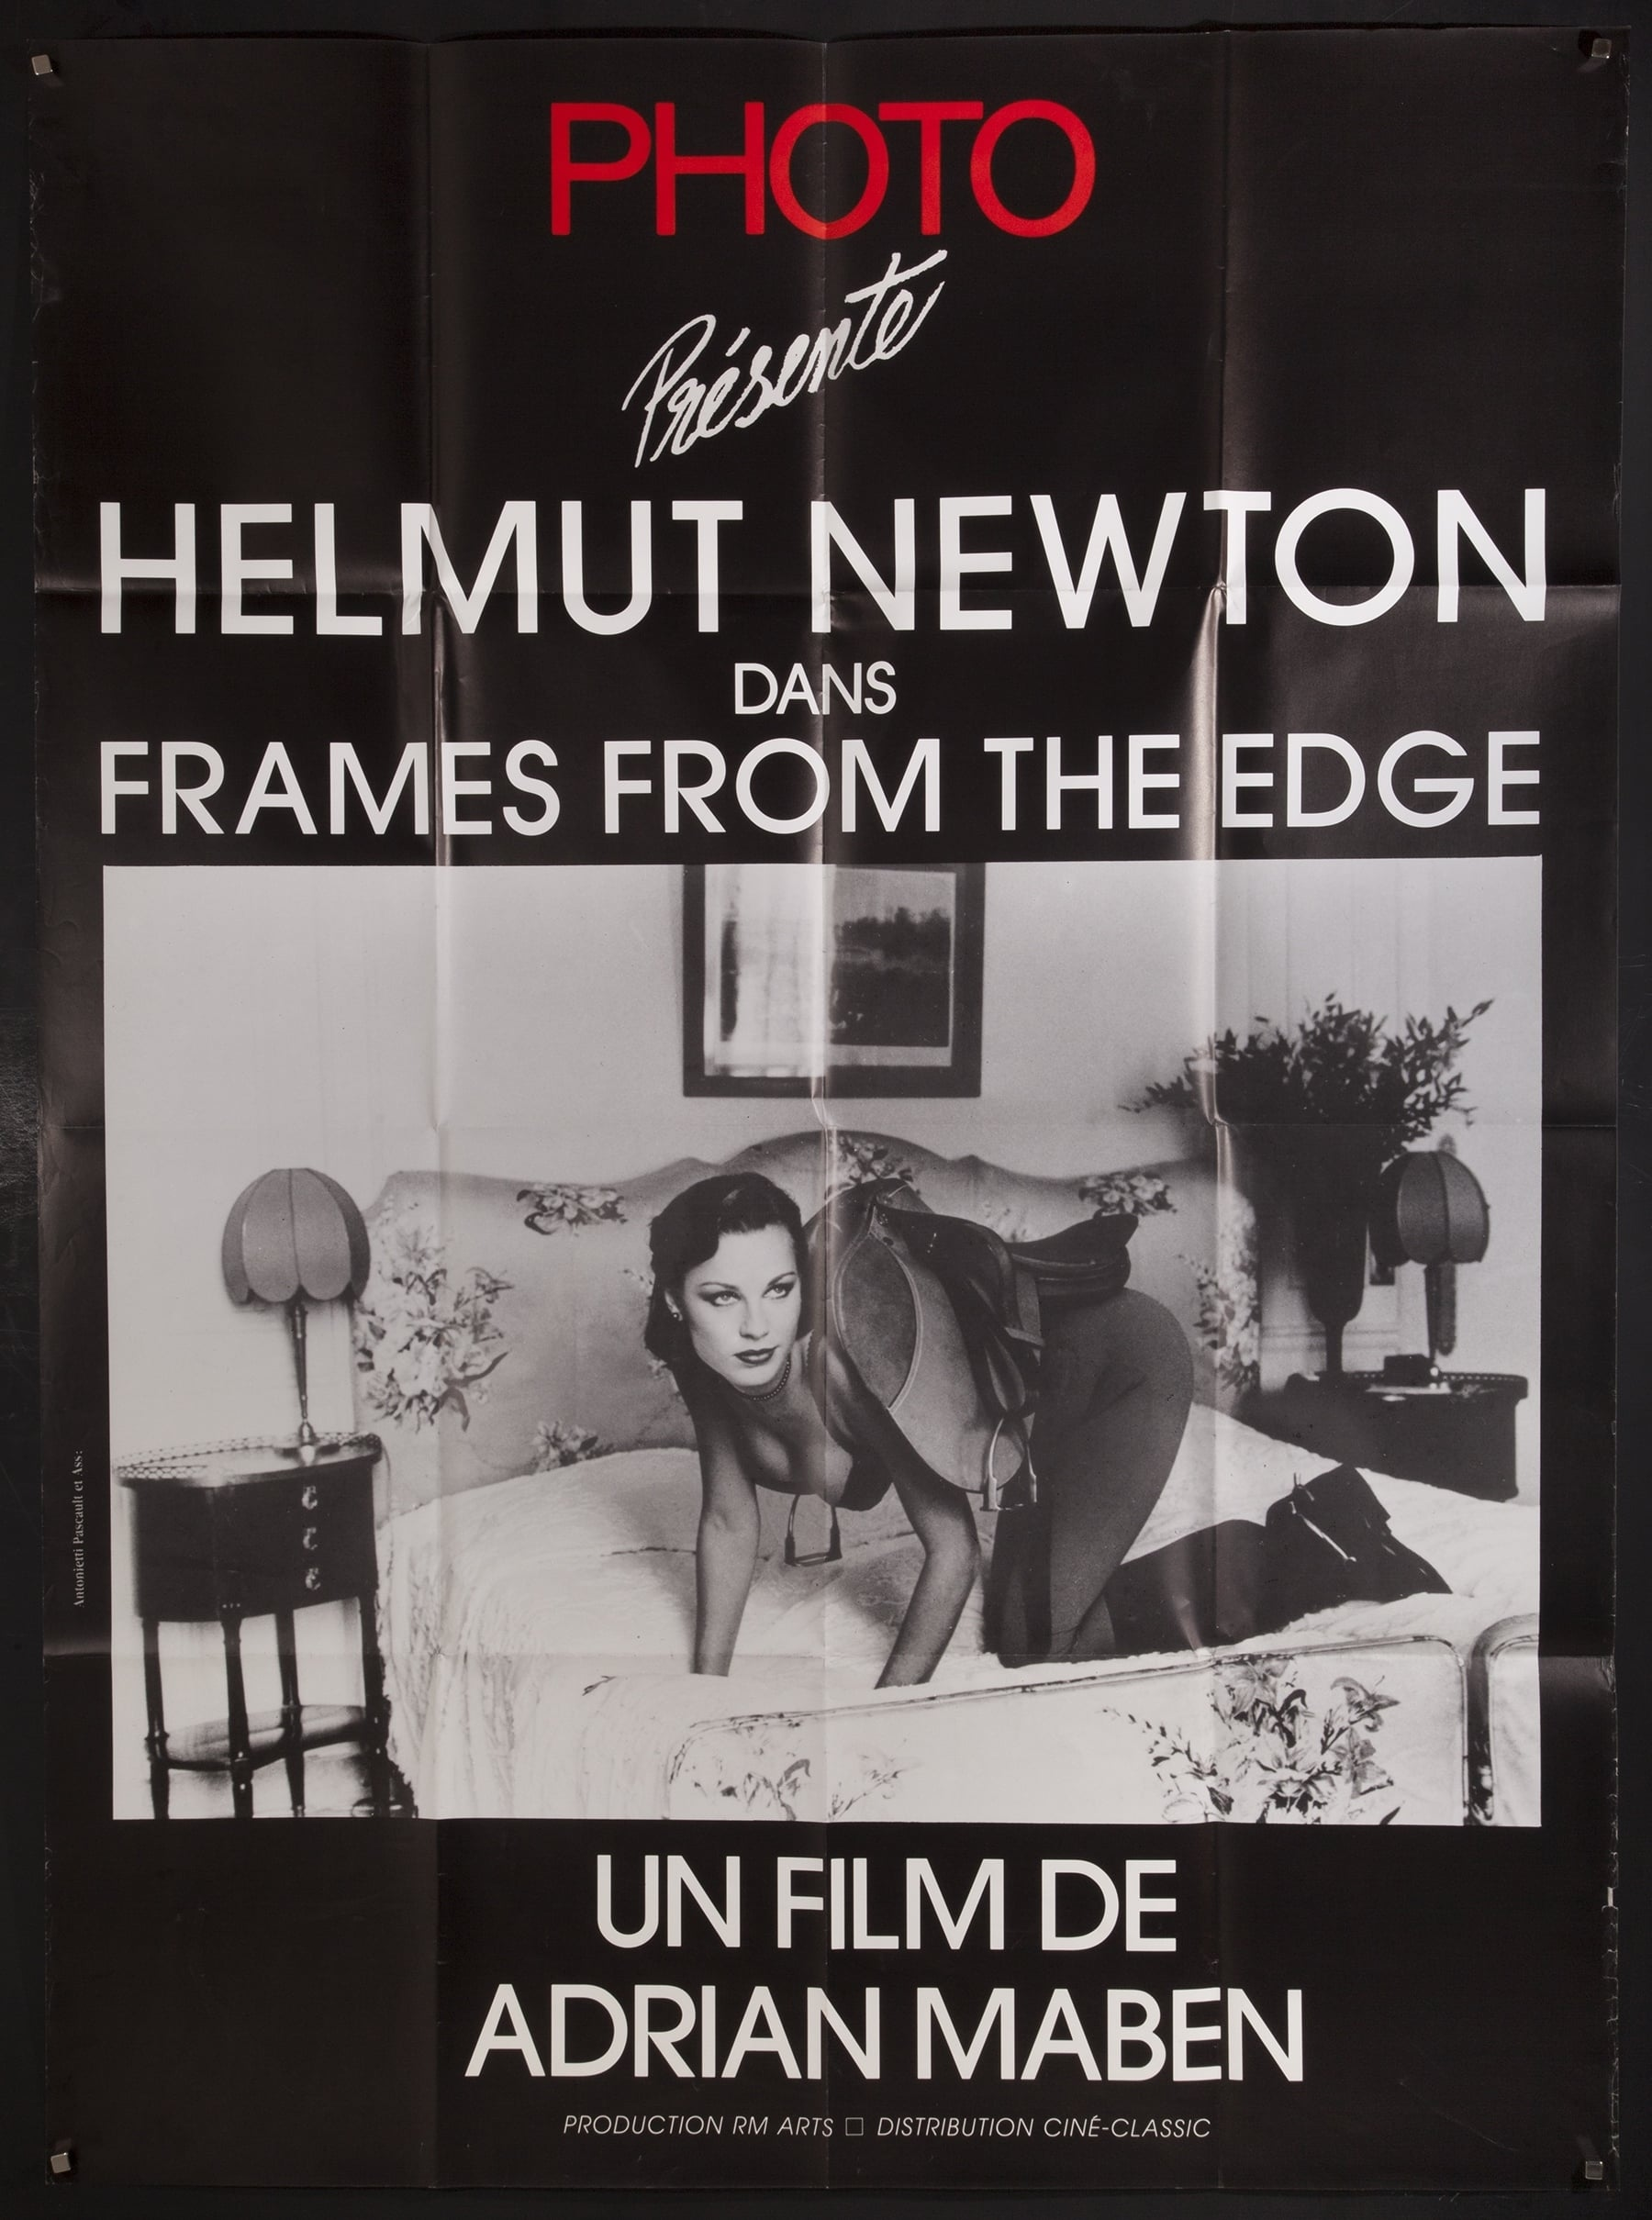 Helmut Newton Frames from The Edge Movie free download HD 720p